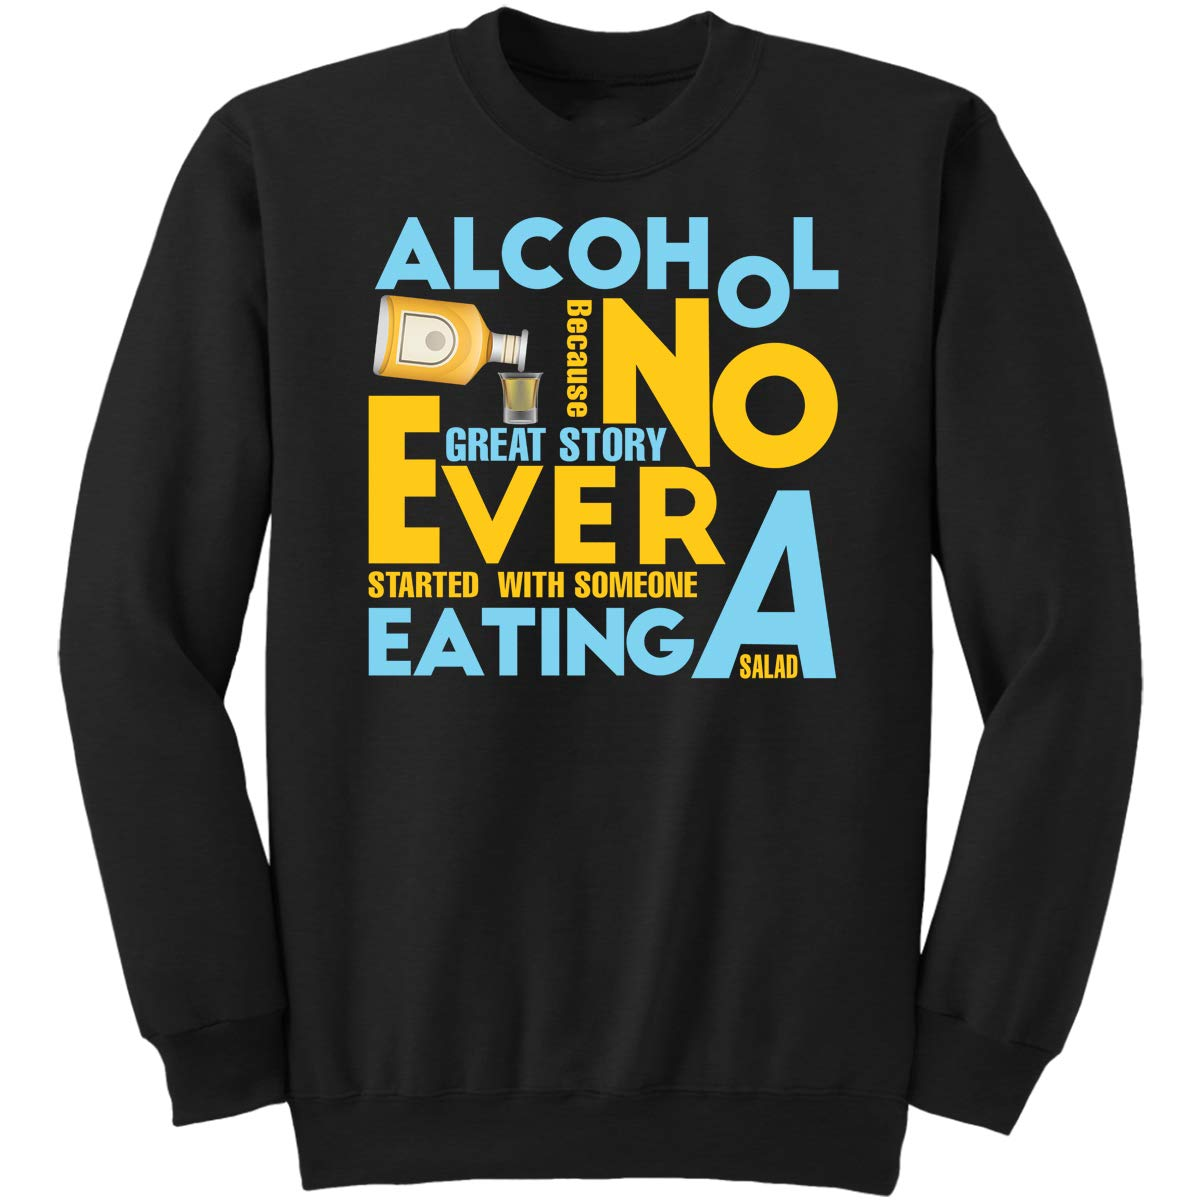 DoozyGifts99 Alcohol Because Great Story-Beer Mens W Sweatshirt